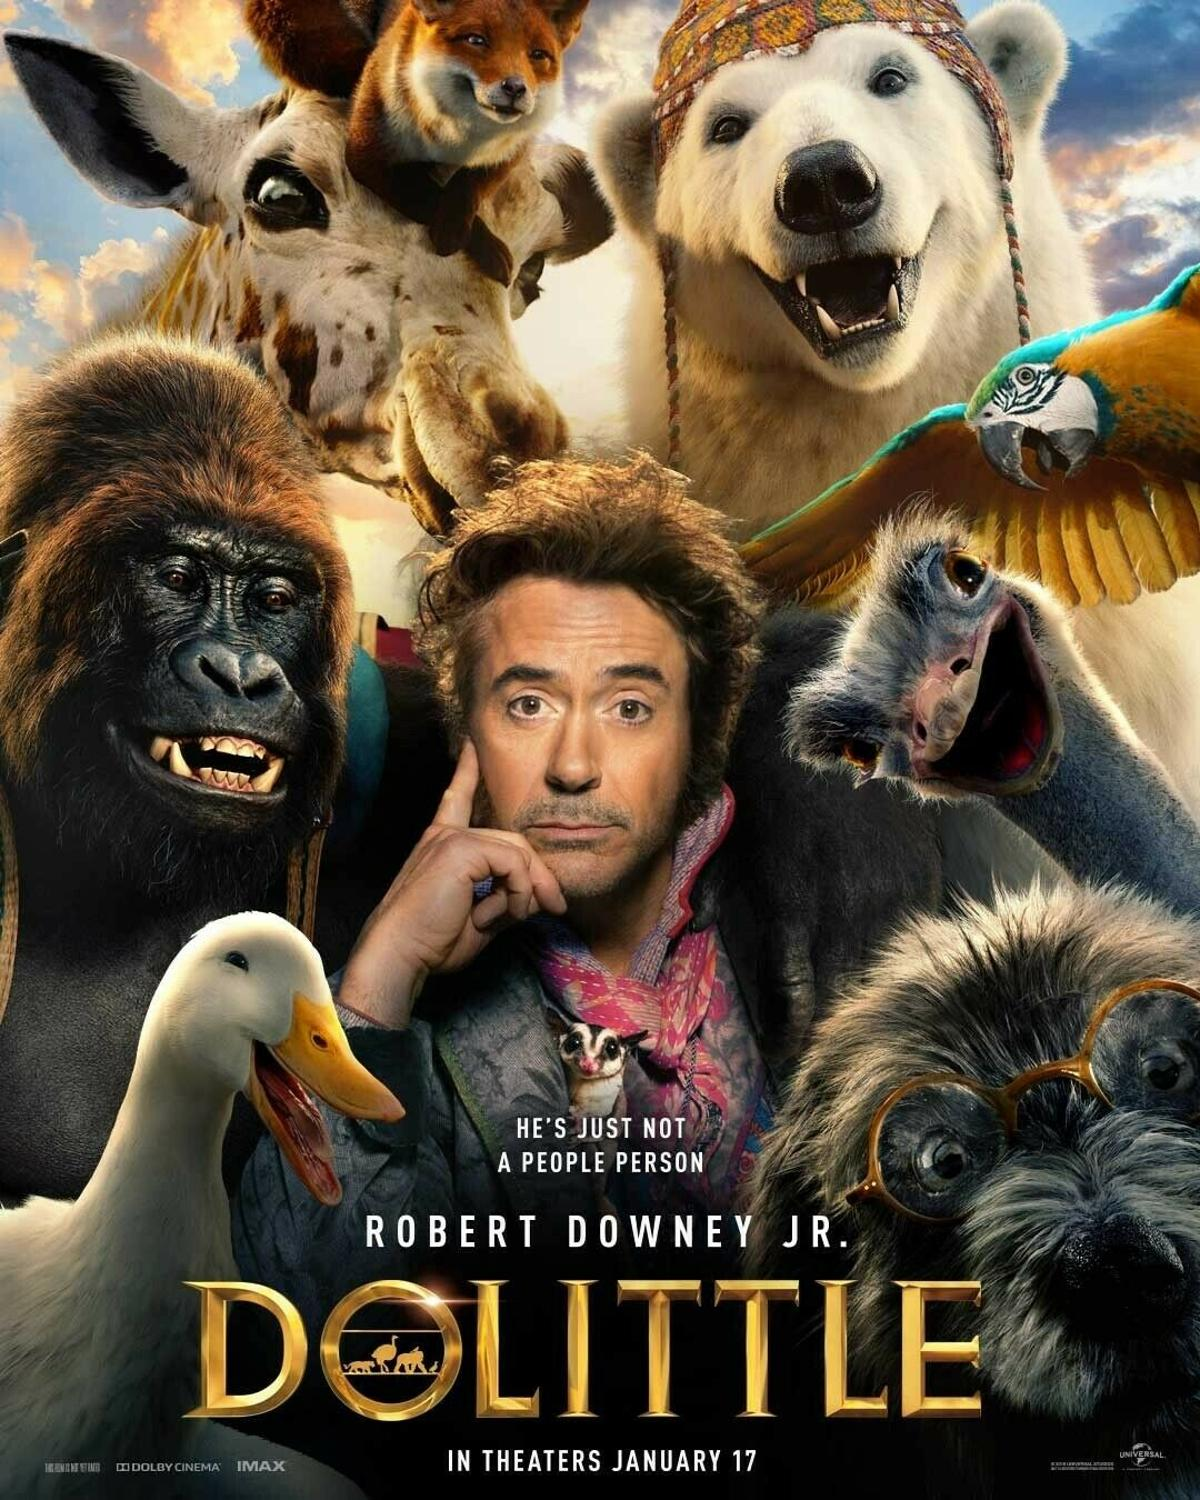 Dolittle Robert Downey Jr Animal Movie Film Silk Fabric Wall Poster Art Decor Sticker Bright image